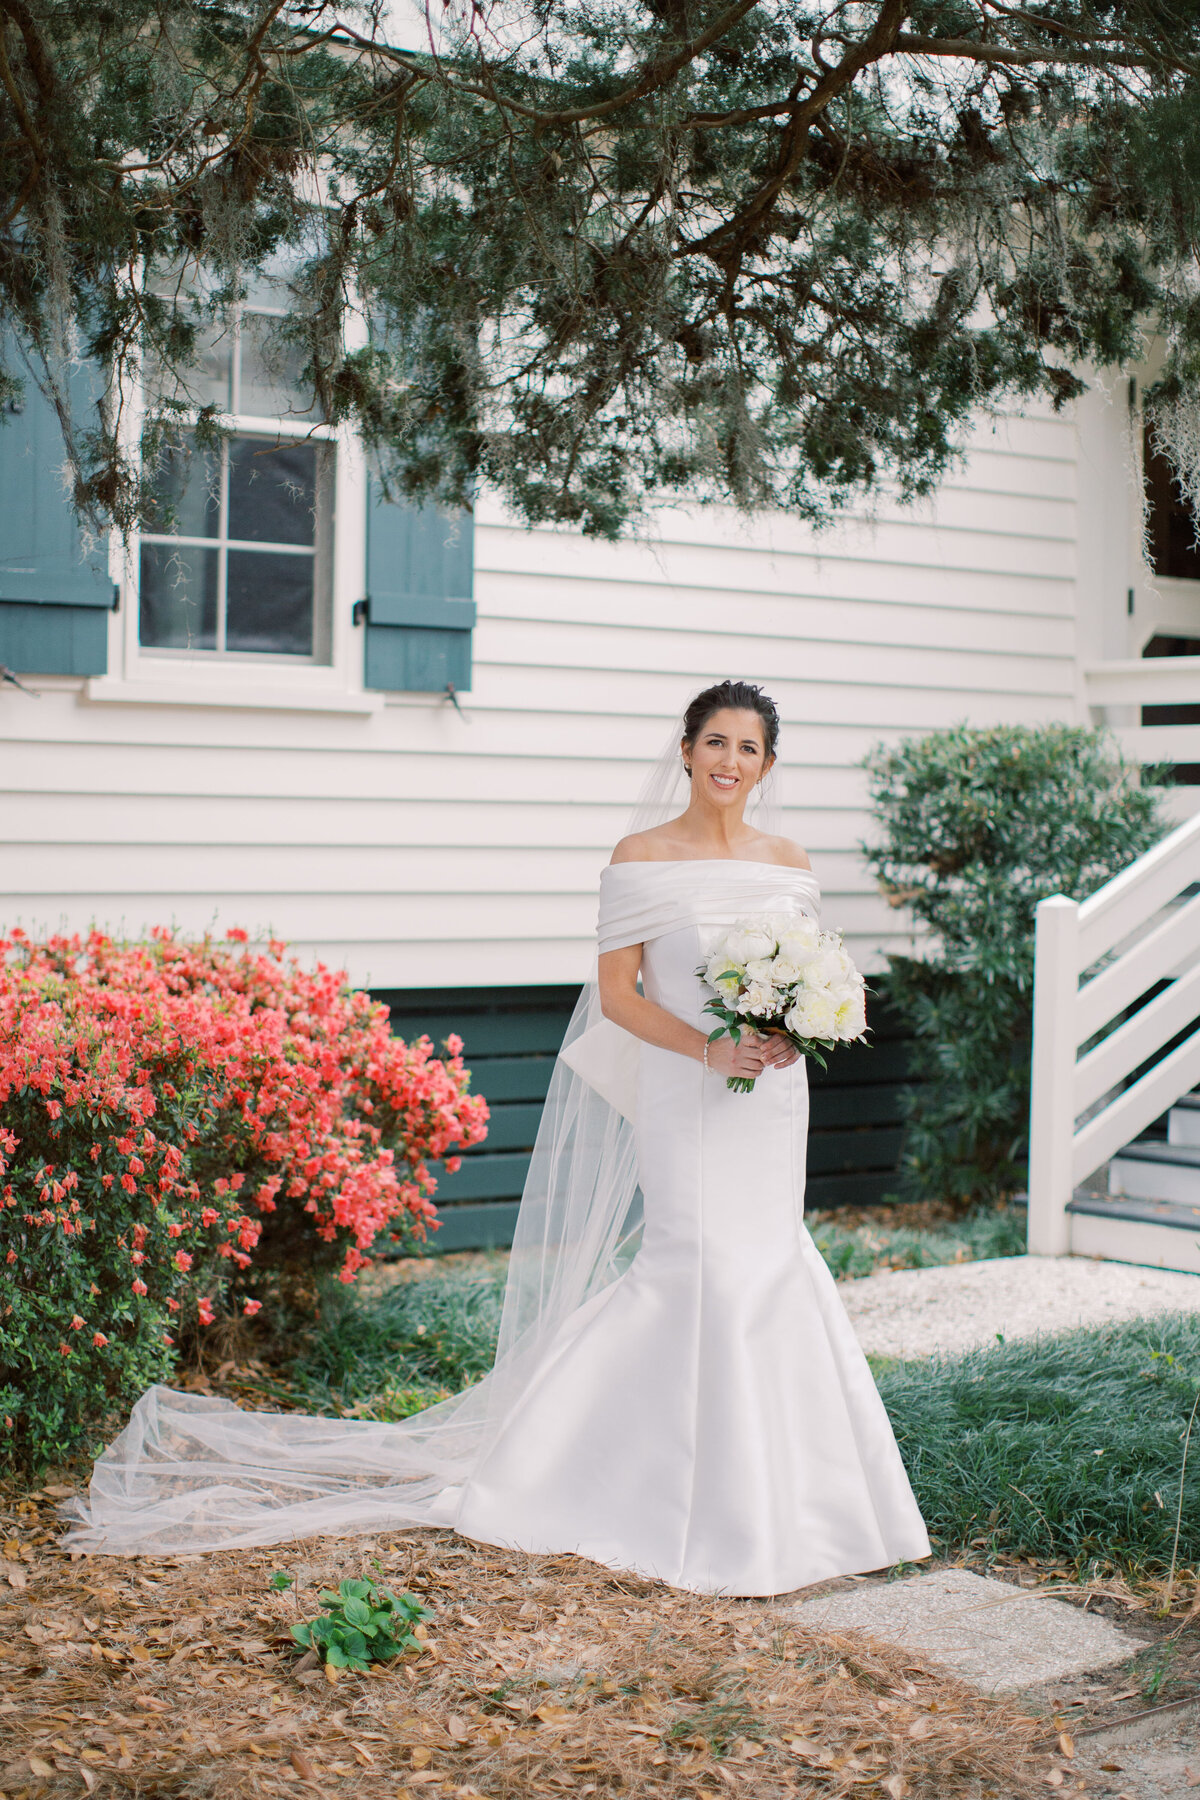 Powell_Oldfield_River_Club_Bluffton_South_Carolina_Beaufort_Savannah_Wedding_Jacksonville_Florida_Devon_Donnahoo_Photography_0071